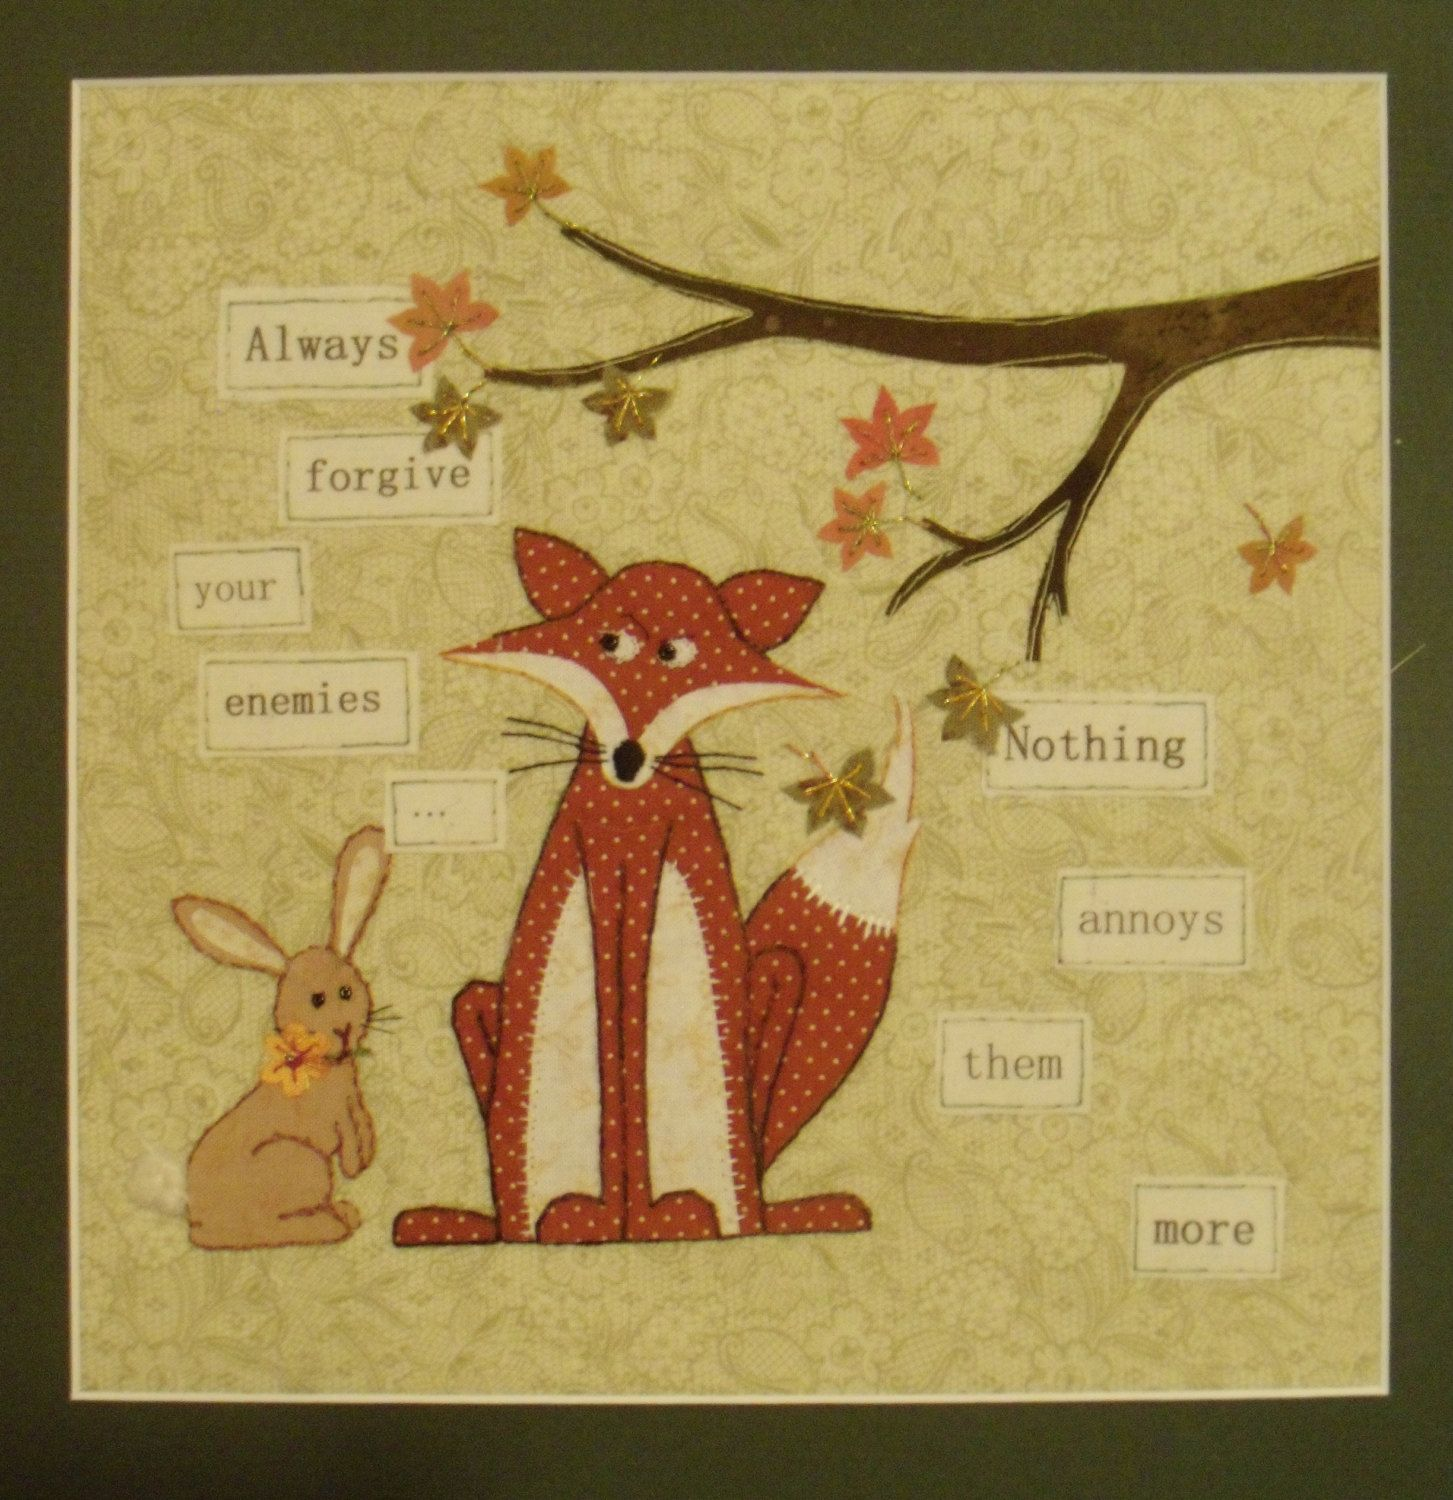 Hand stitched rabbit and fox embroidery with forgiveness quote ...